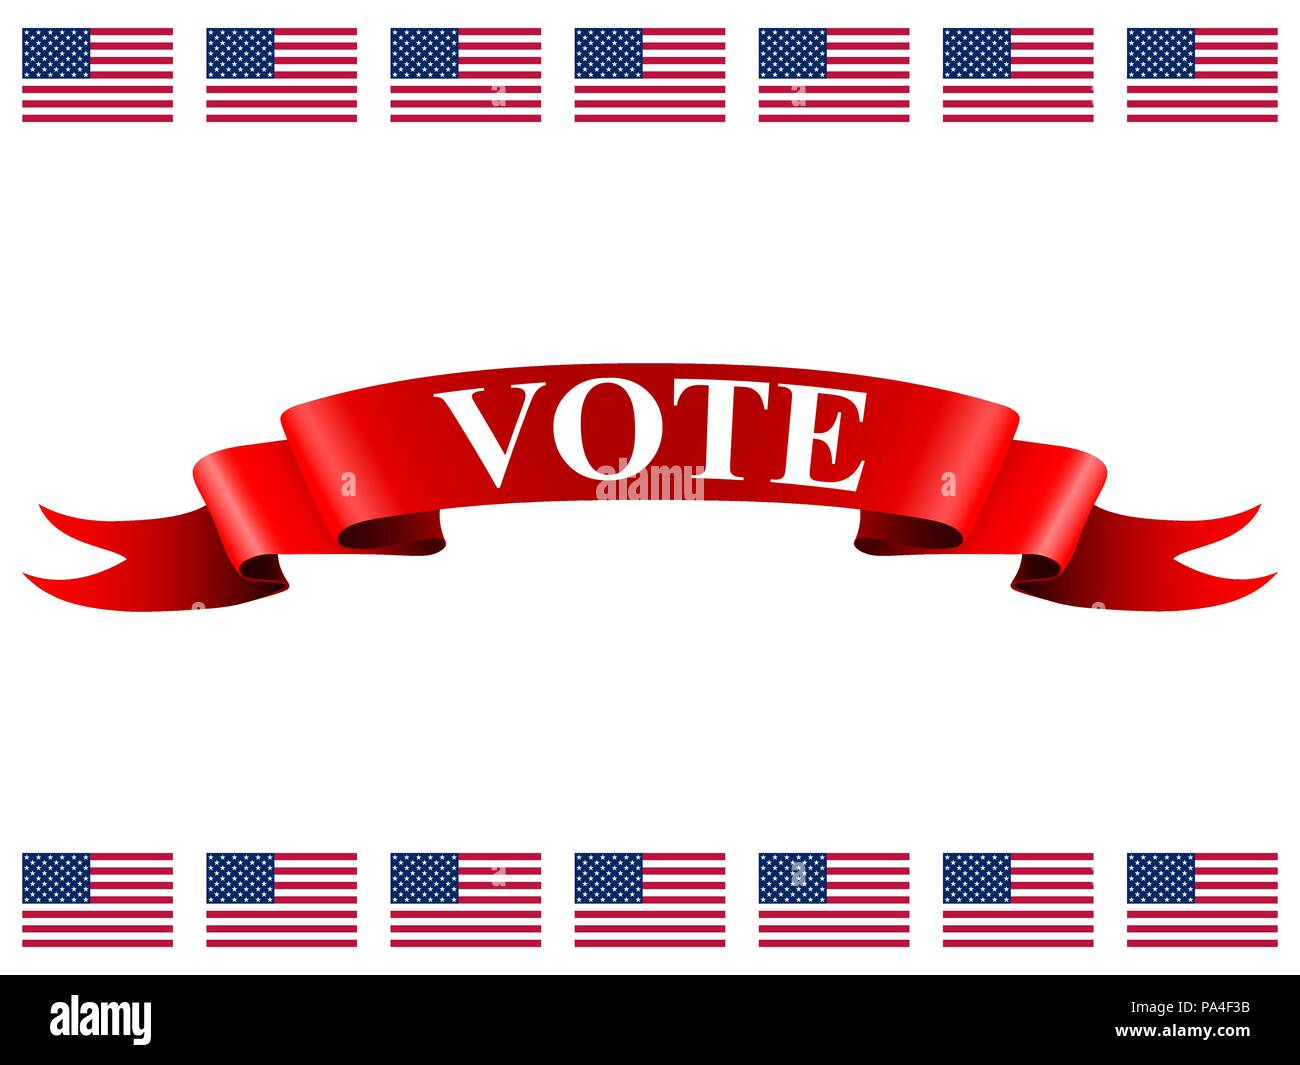 US Elections - Stock Image